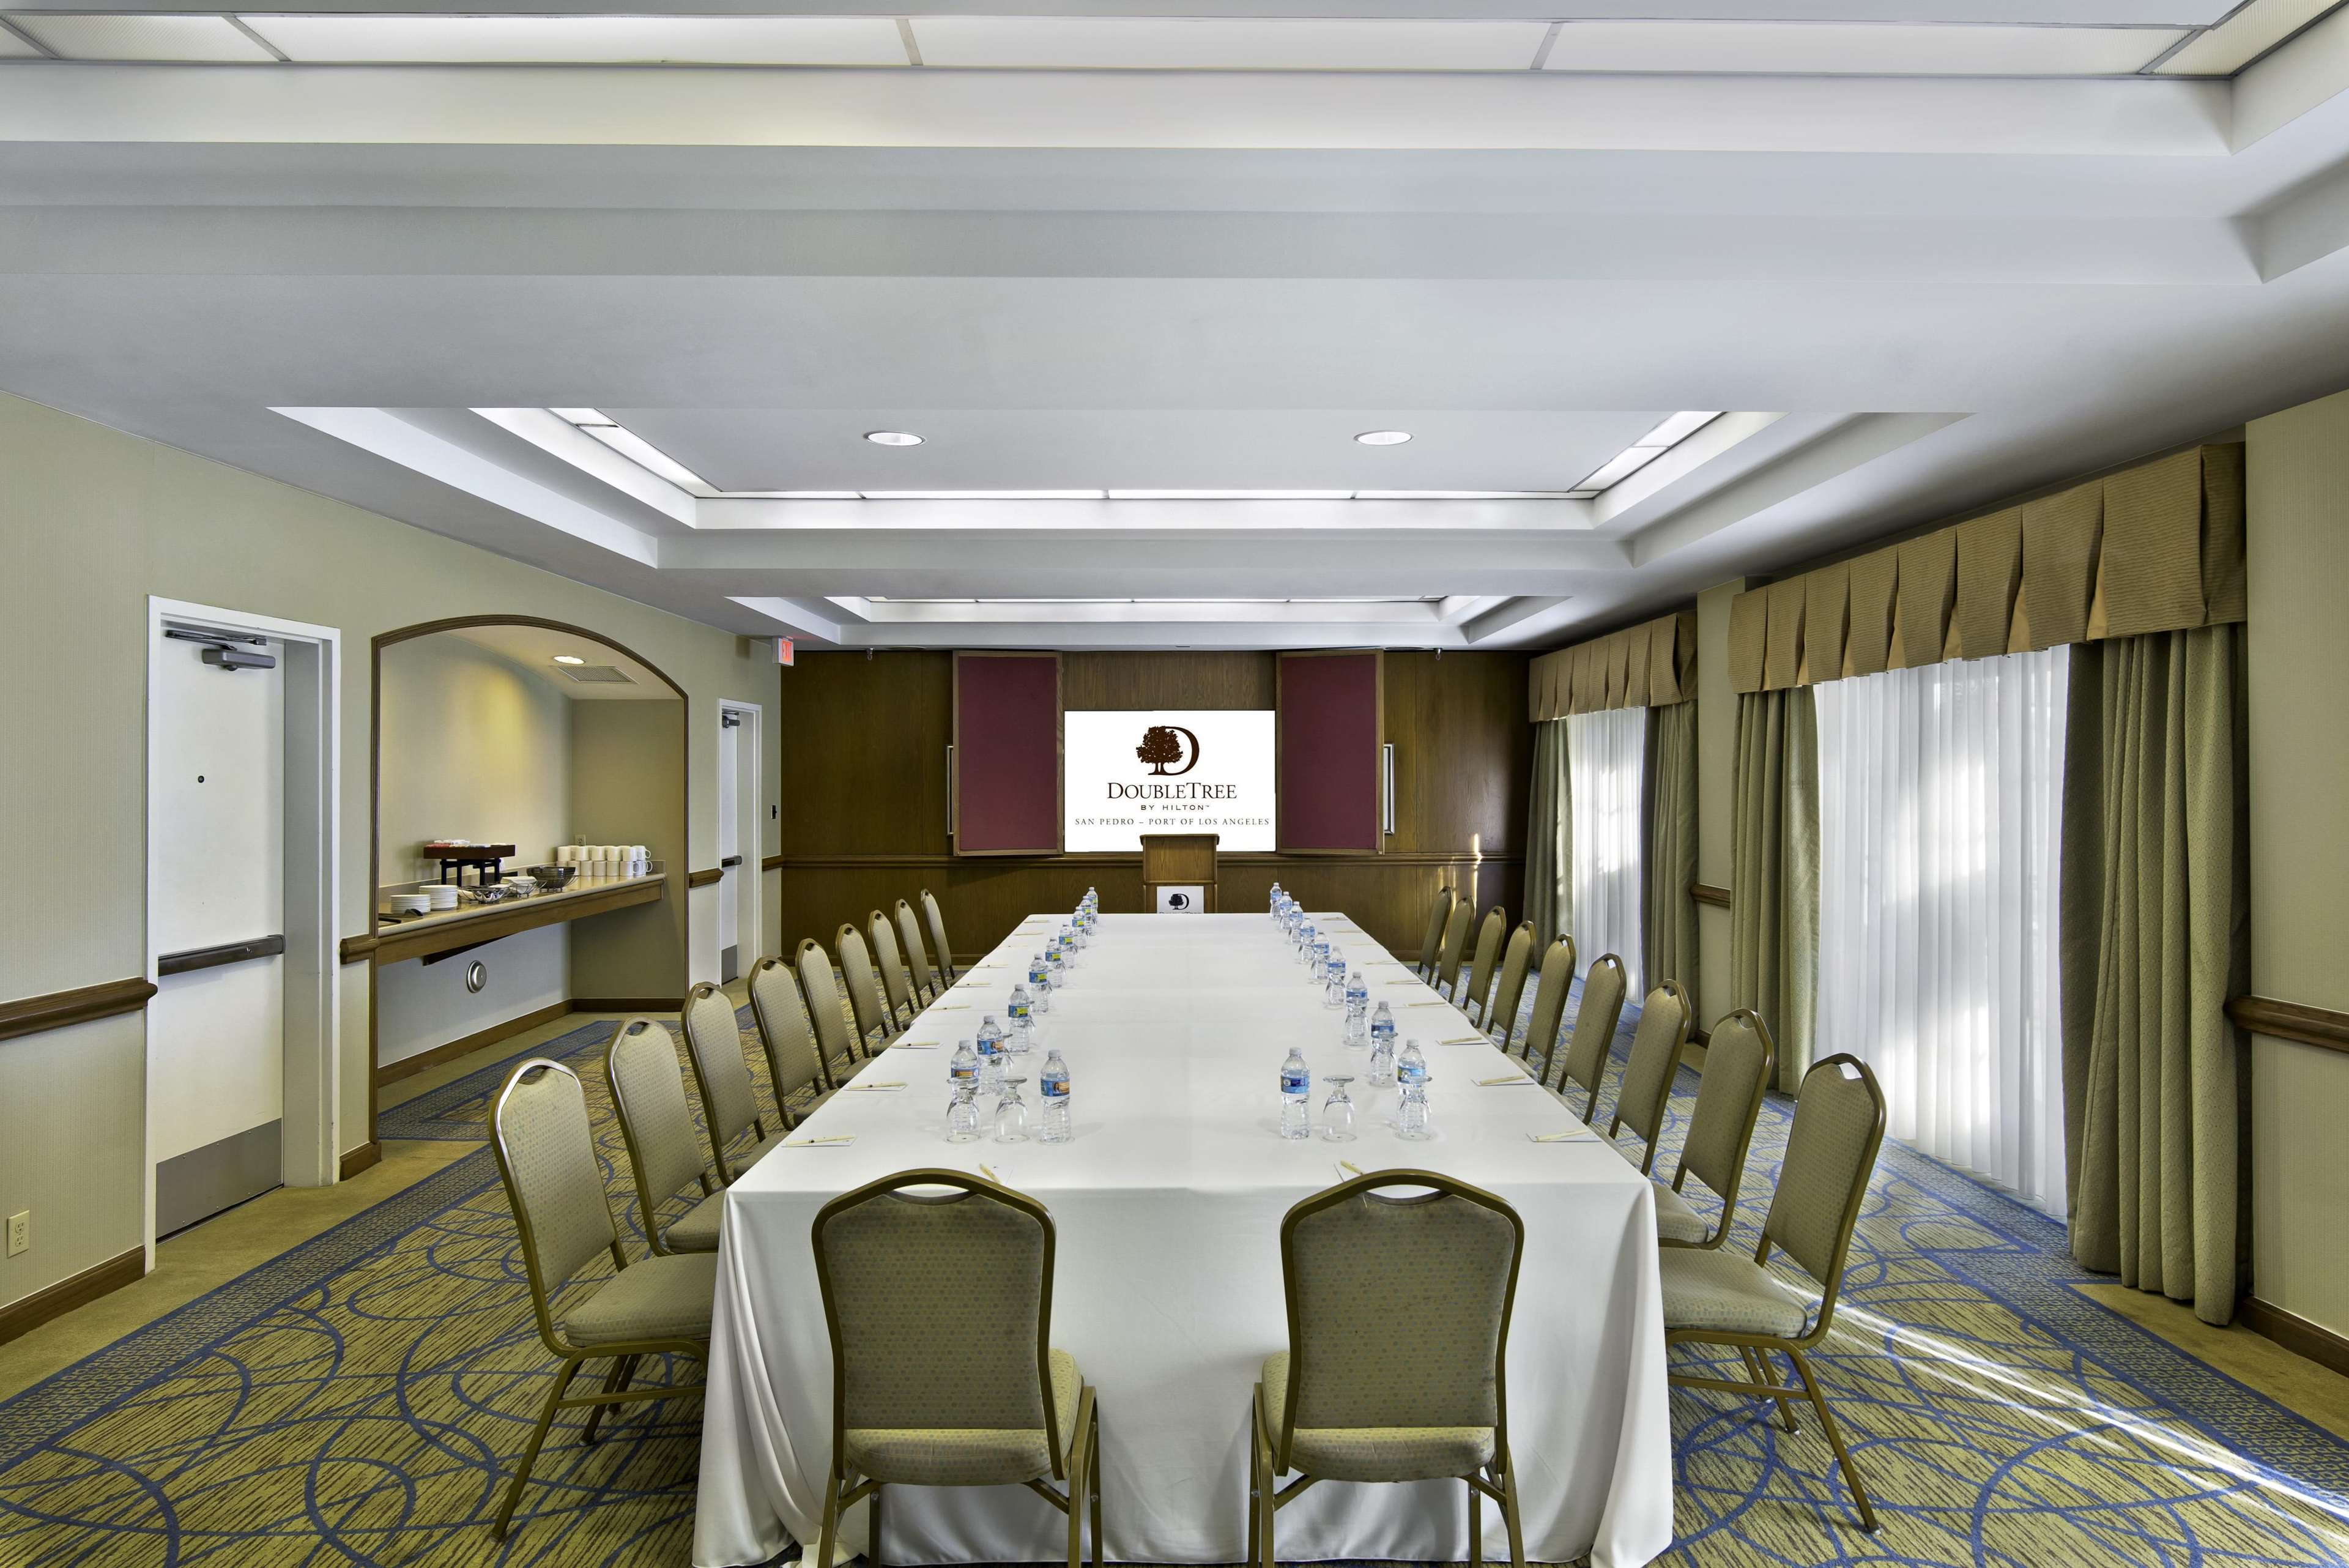 DoubleTree by Hilton Hotel San Pedro - Port of Los Angeles image 31